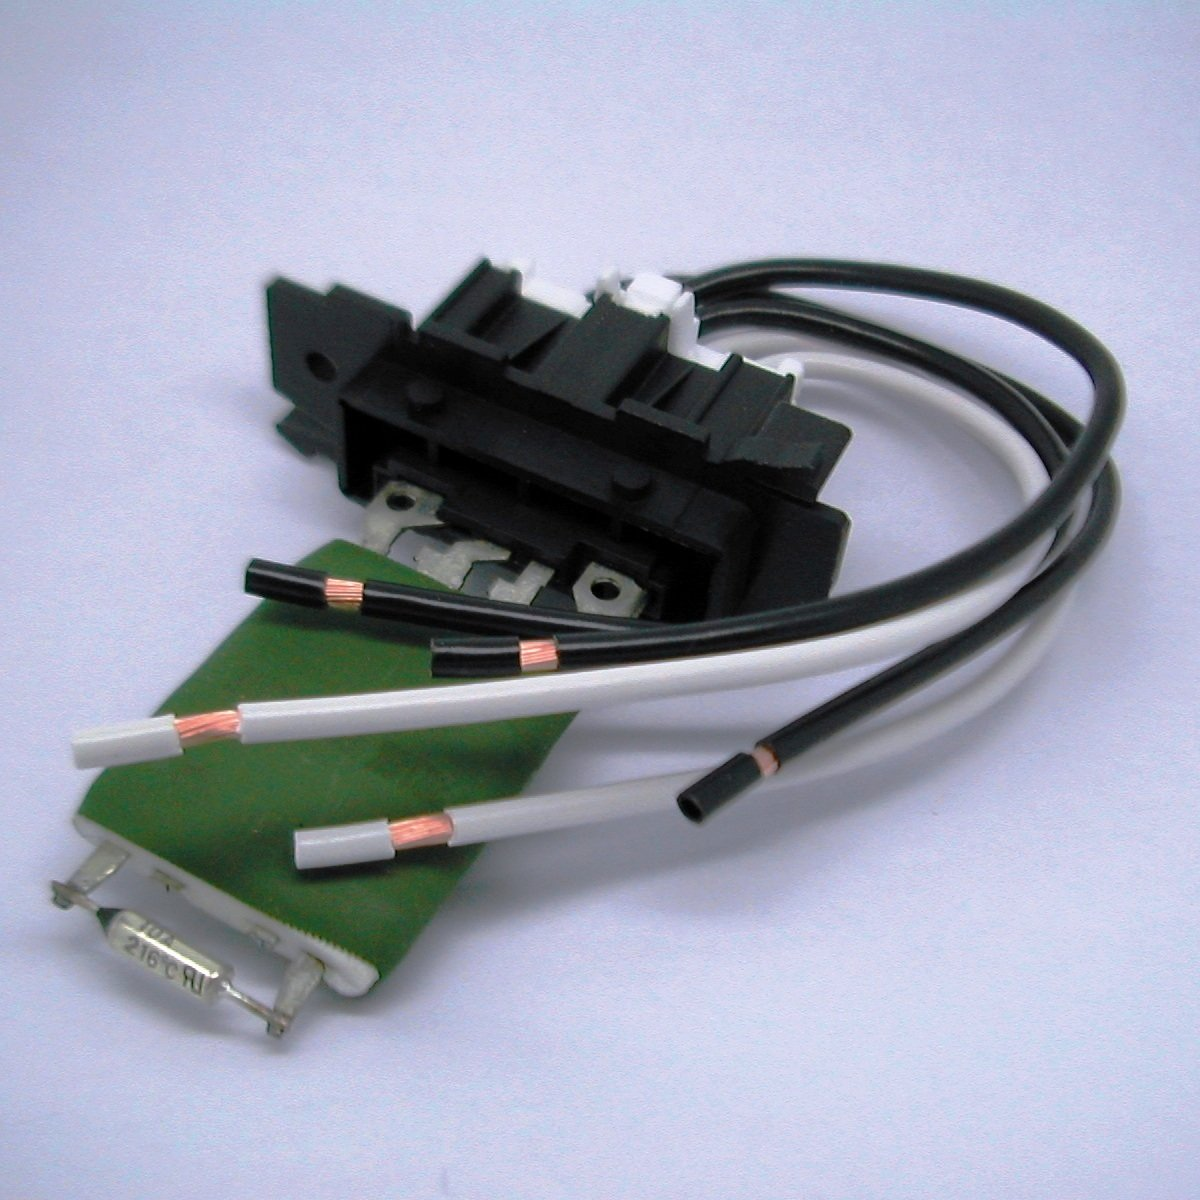 71qSwpfCyBL._SL1200_ qdi heater blower resistor and wiring harness loom repair kit plug wiring harness loom at n-0.co